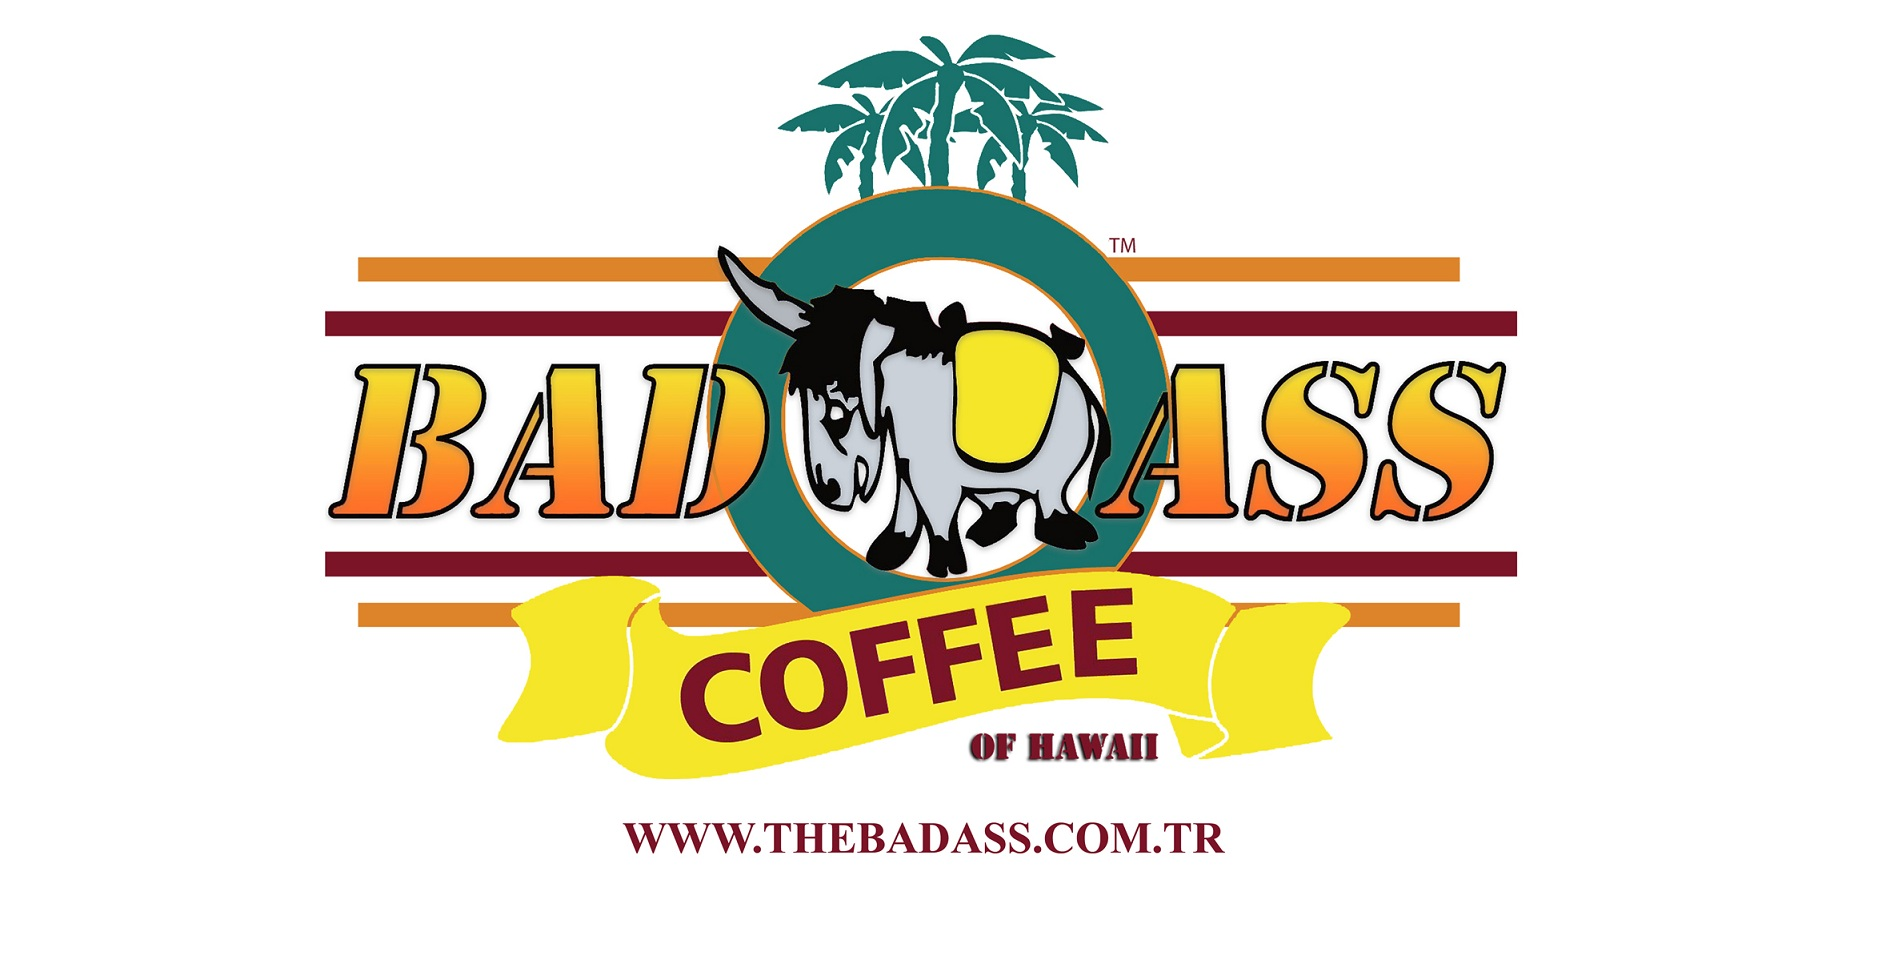 THE BAD ASS COFFEE